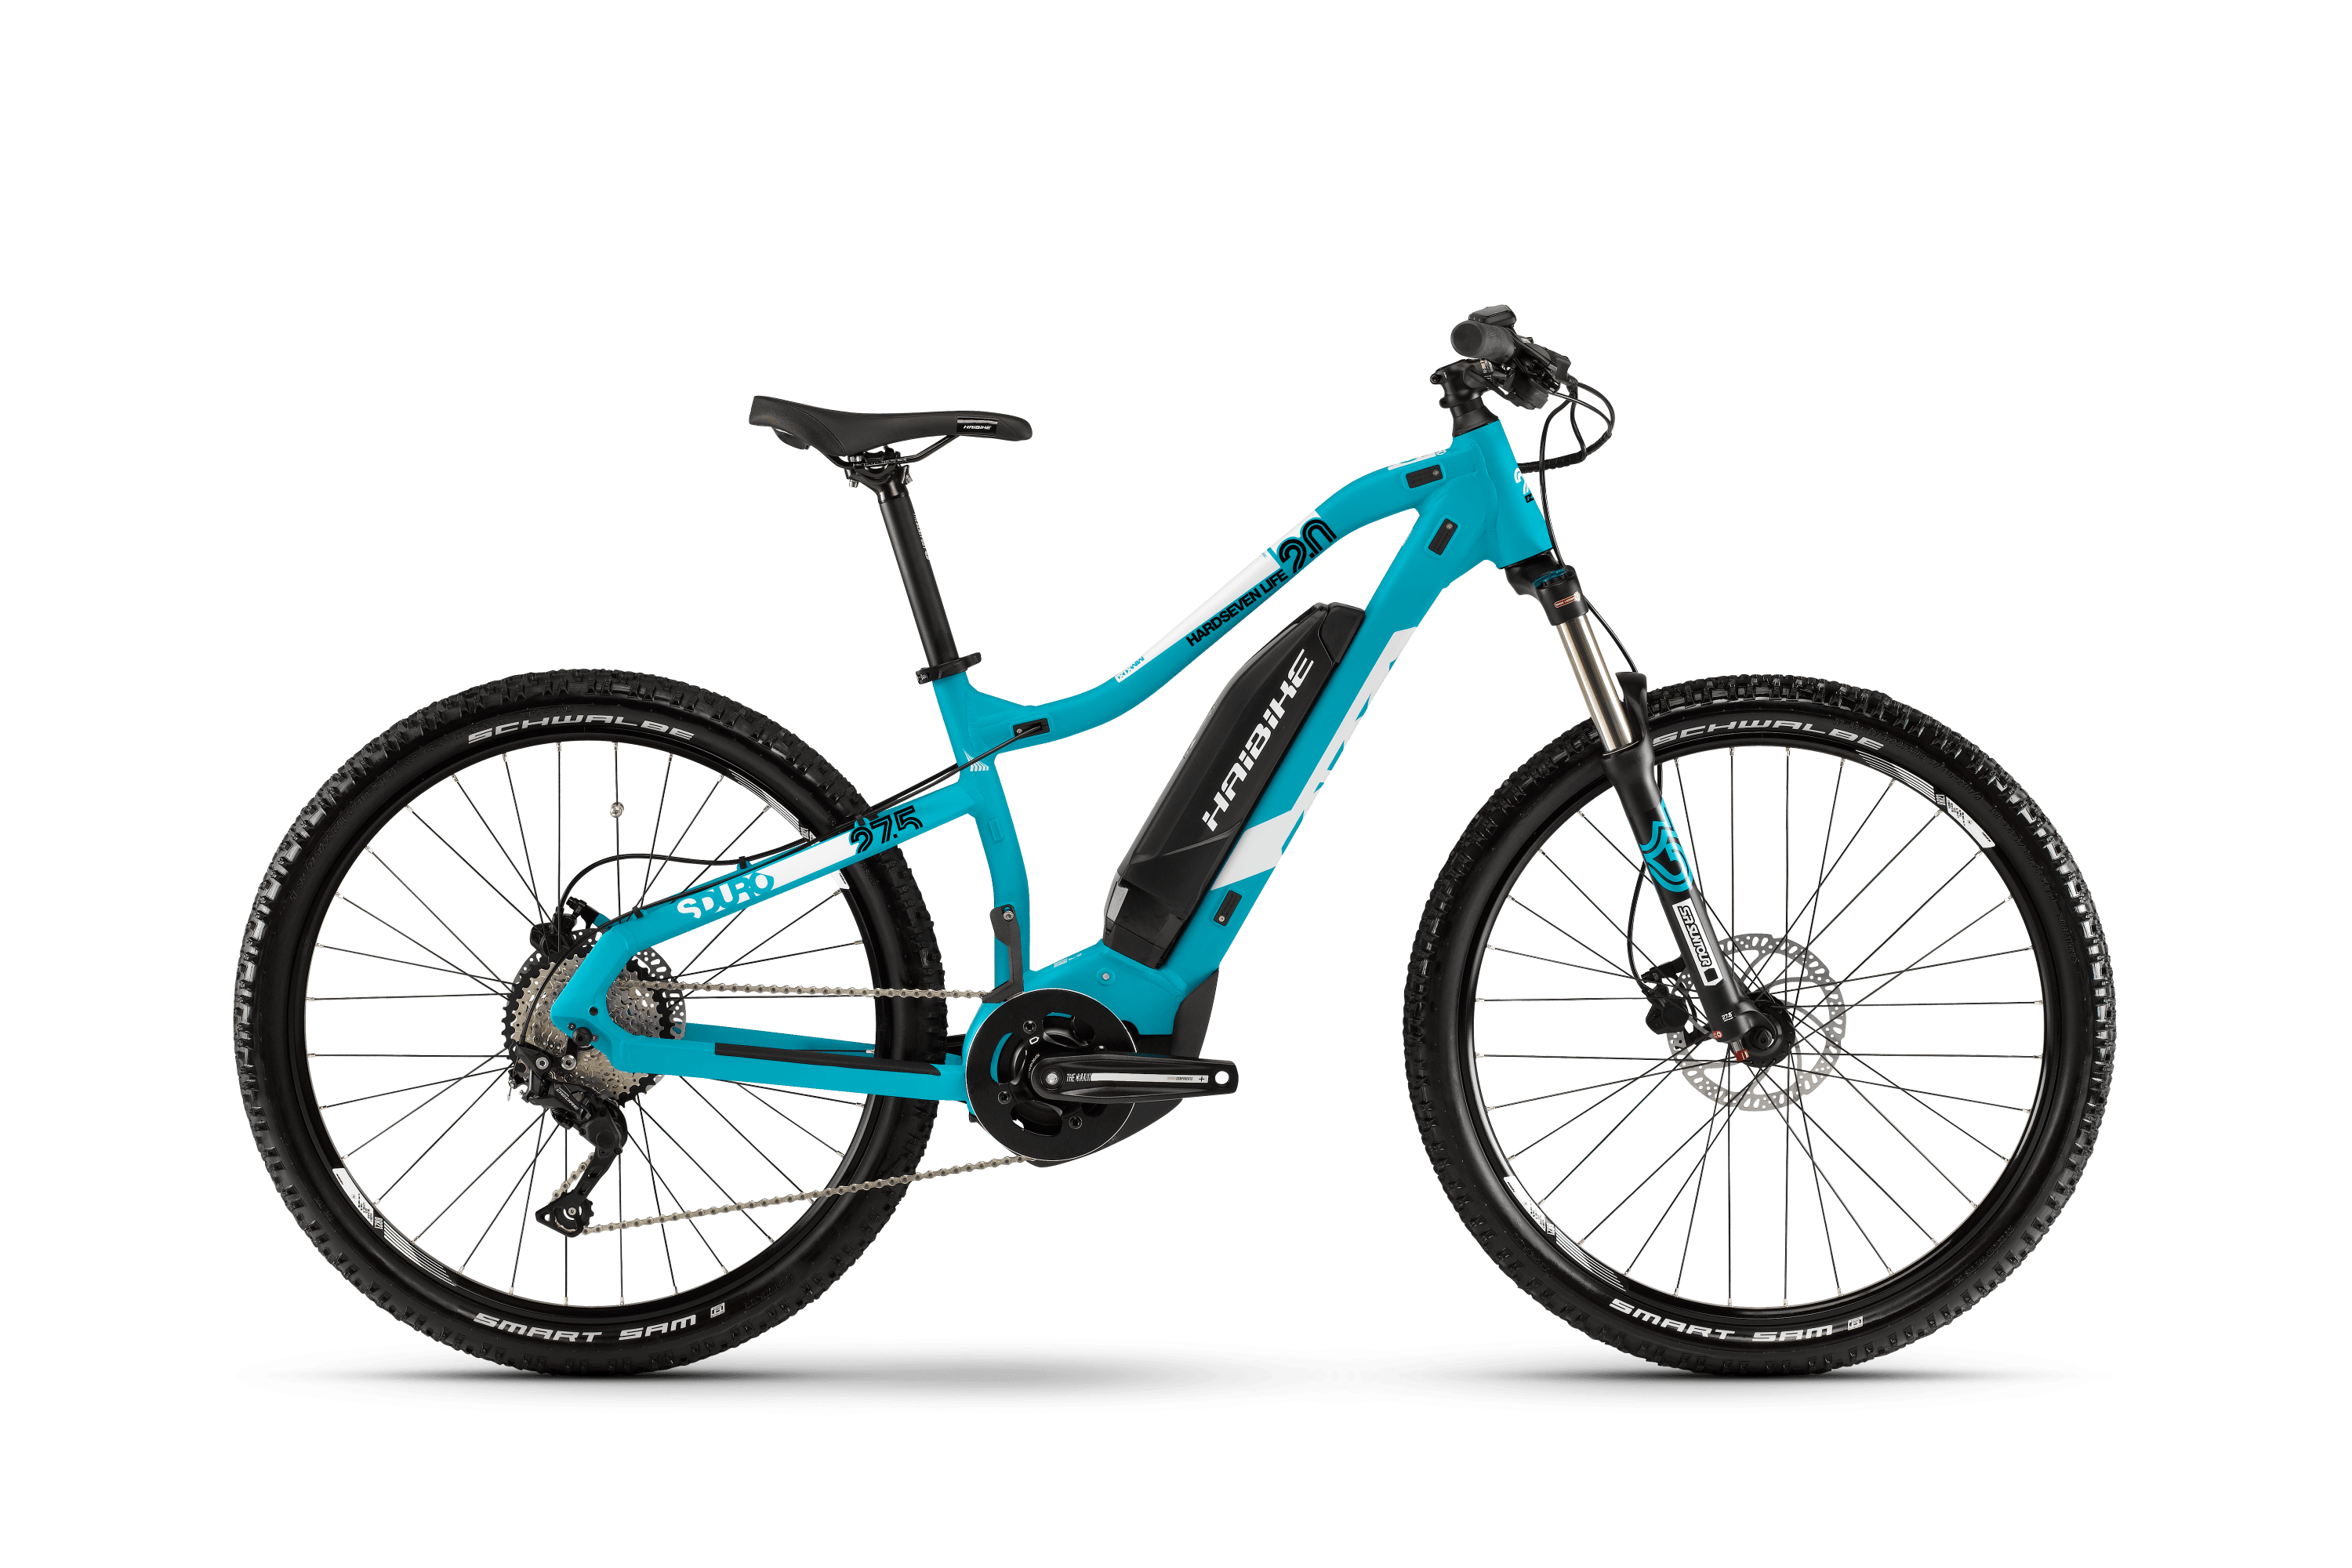 https://w8w5m3f8.stackpathcdn.com/11998-thickbox_extralarge/vtt-electrique-haibike-sduro-hardseven-life-20.jpg